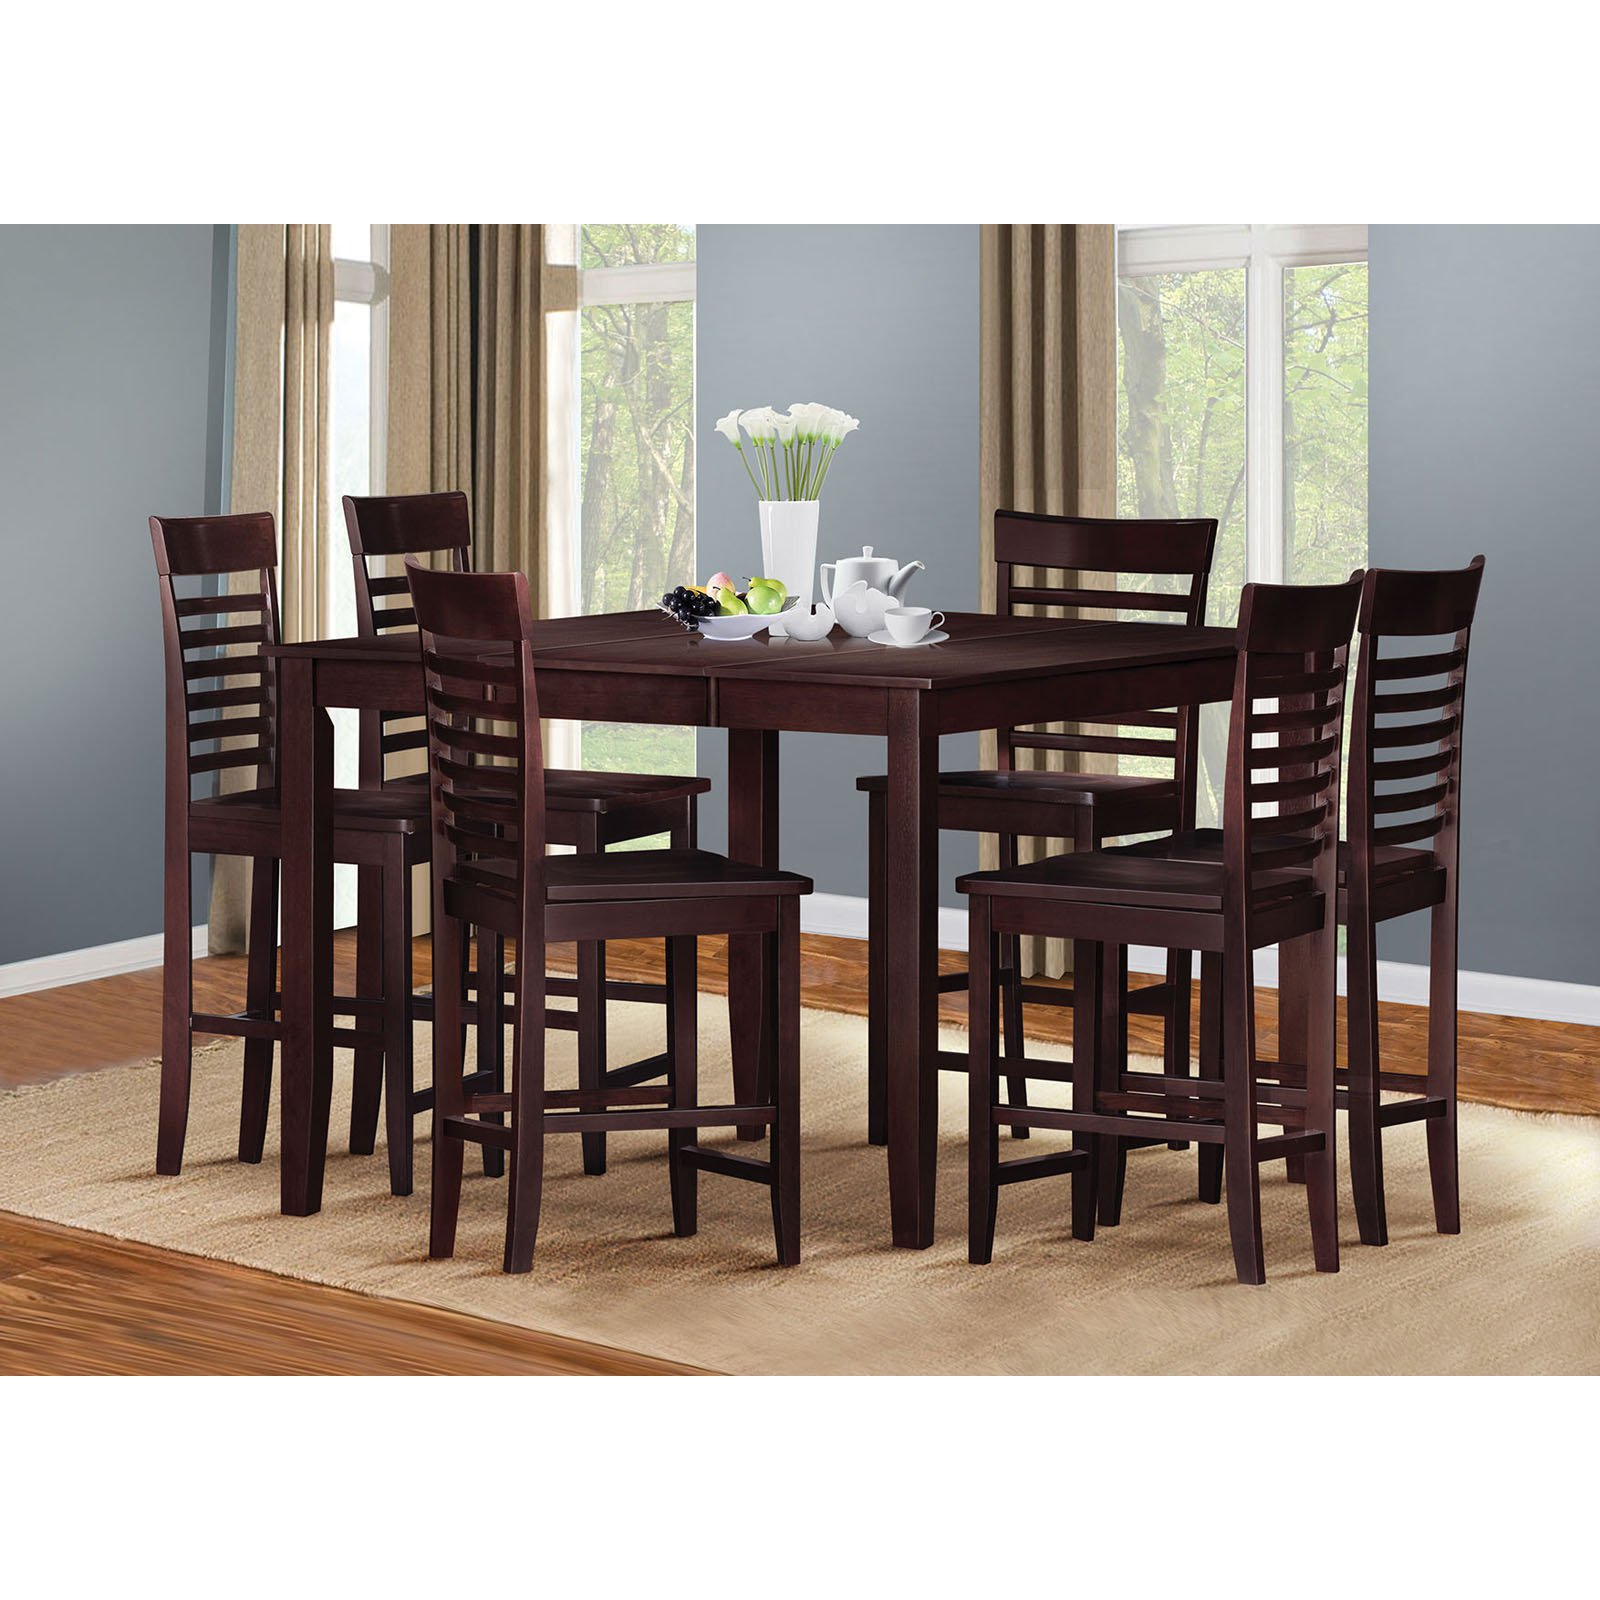 Acme Furniture Ebony 7 Piece Square Counter Height Dining Table Set